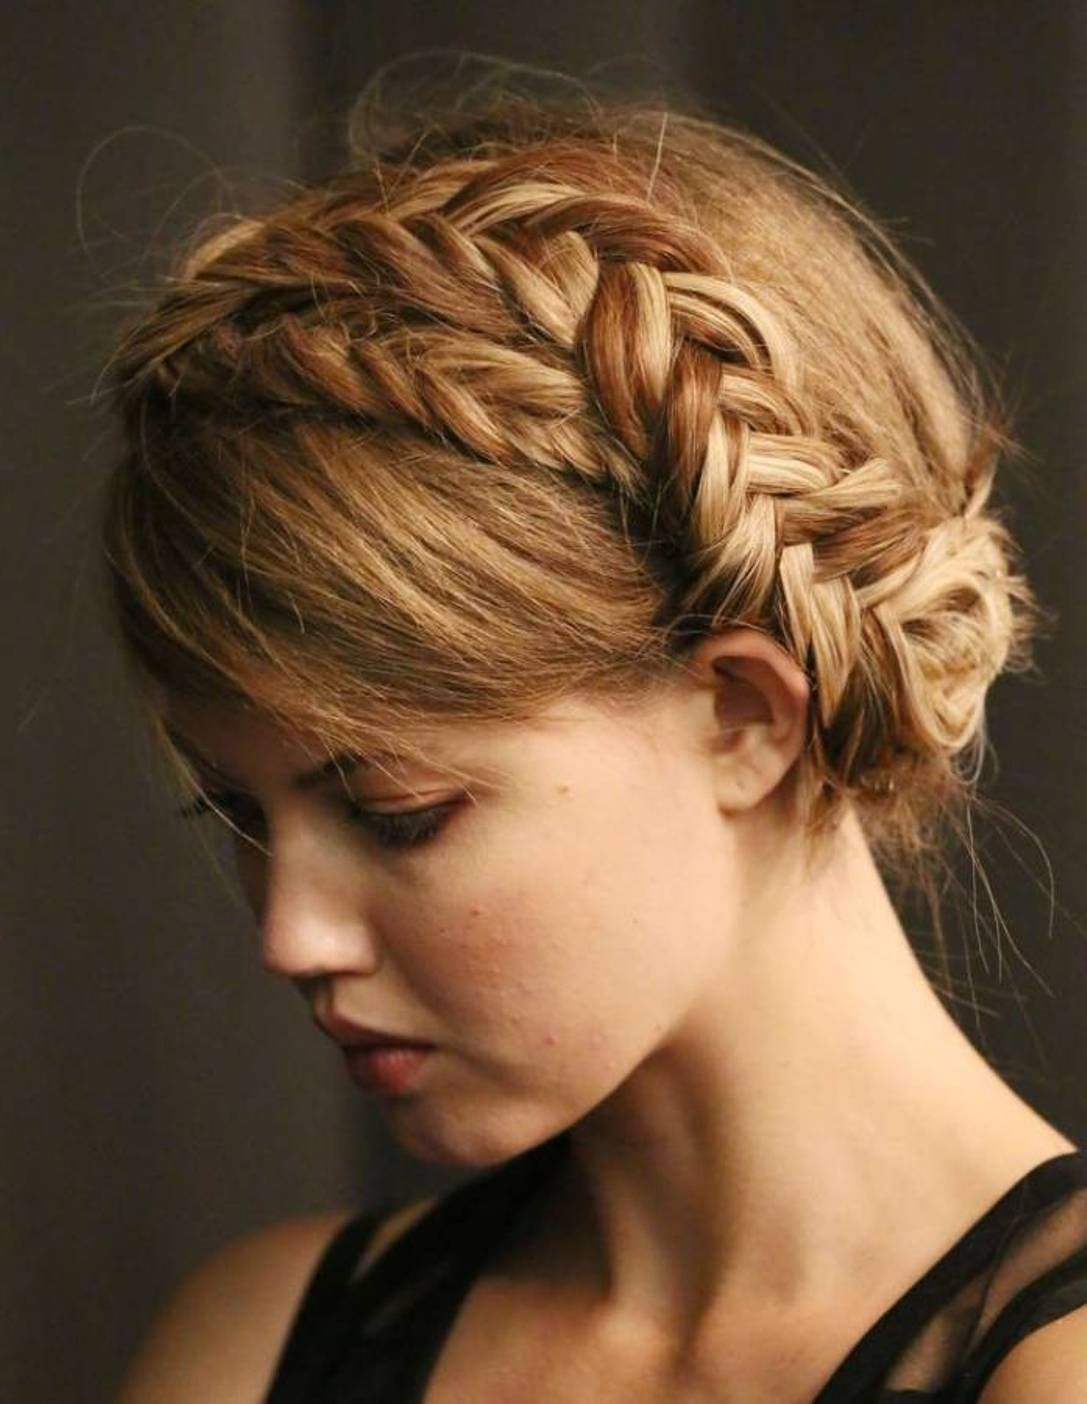 Great Different Types Of Braids | LaurieBrown.net Fashion Center ...